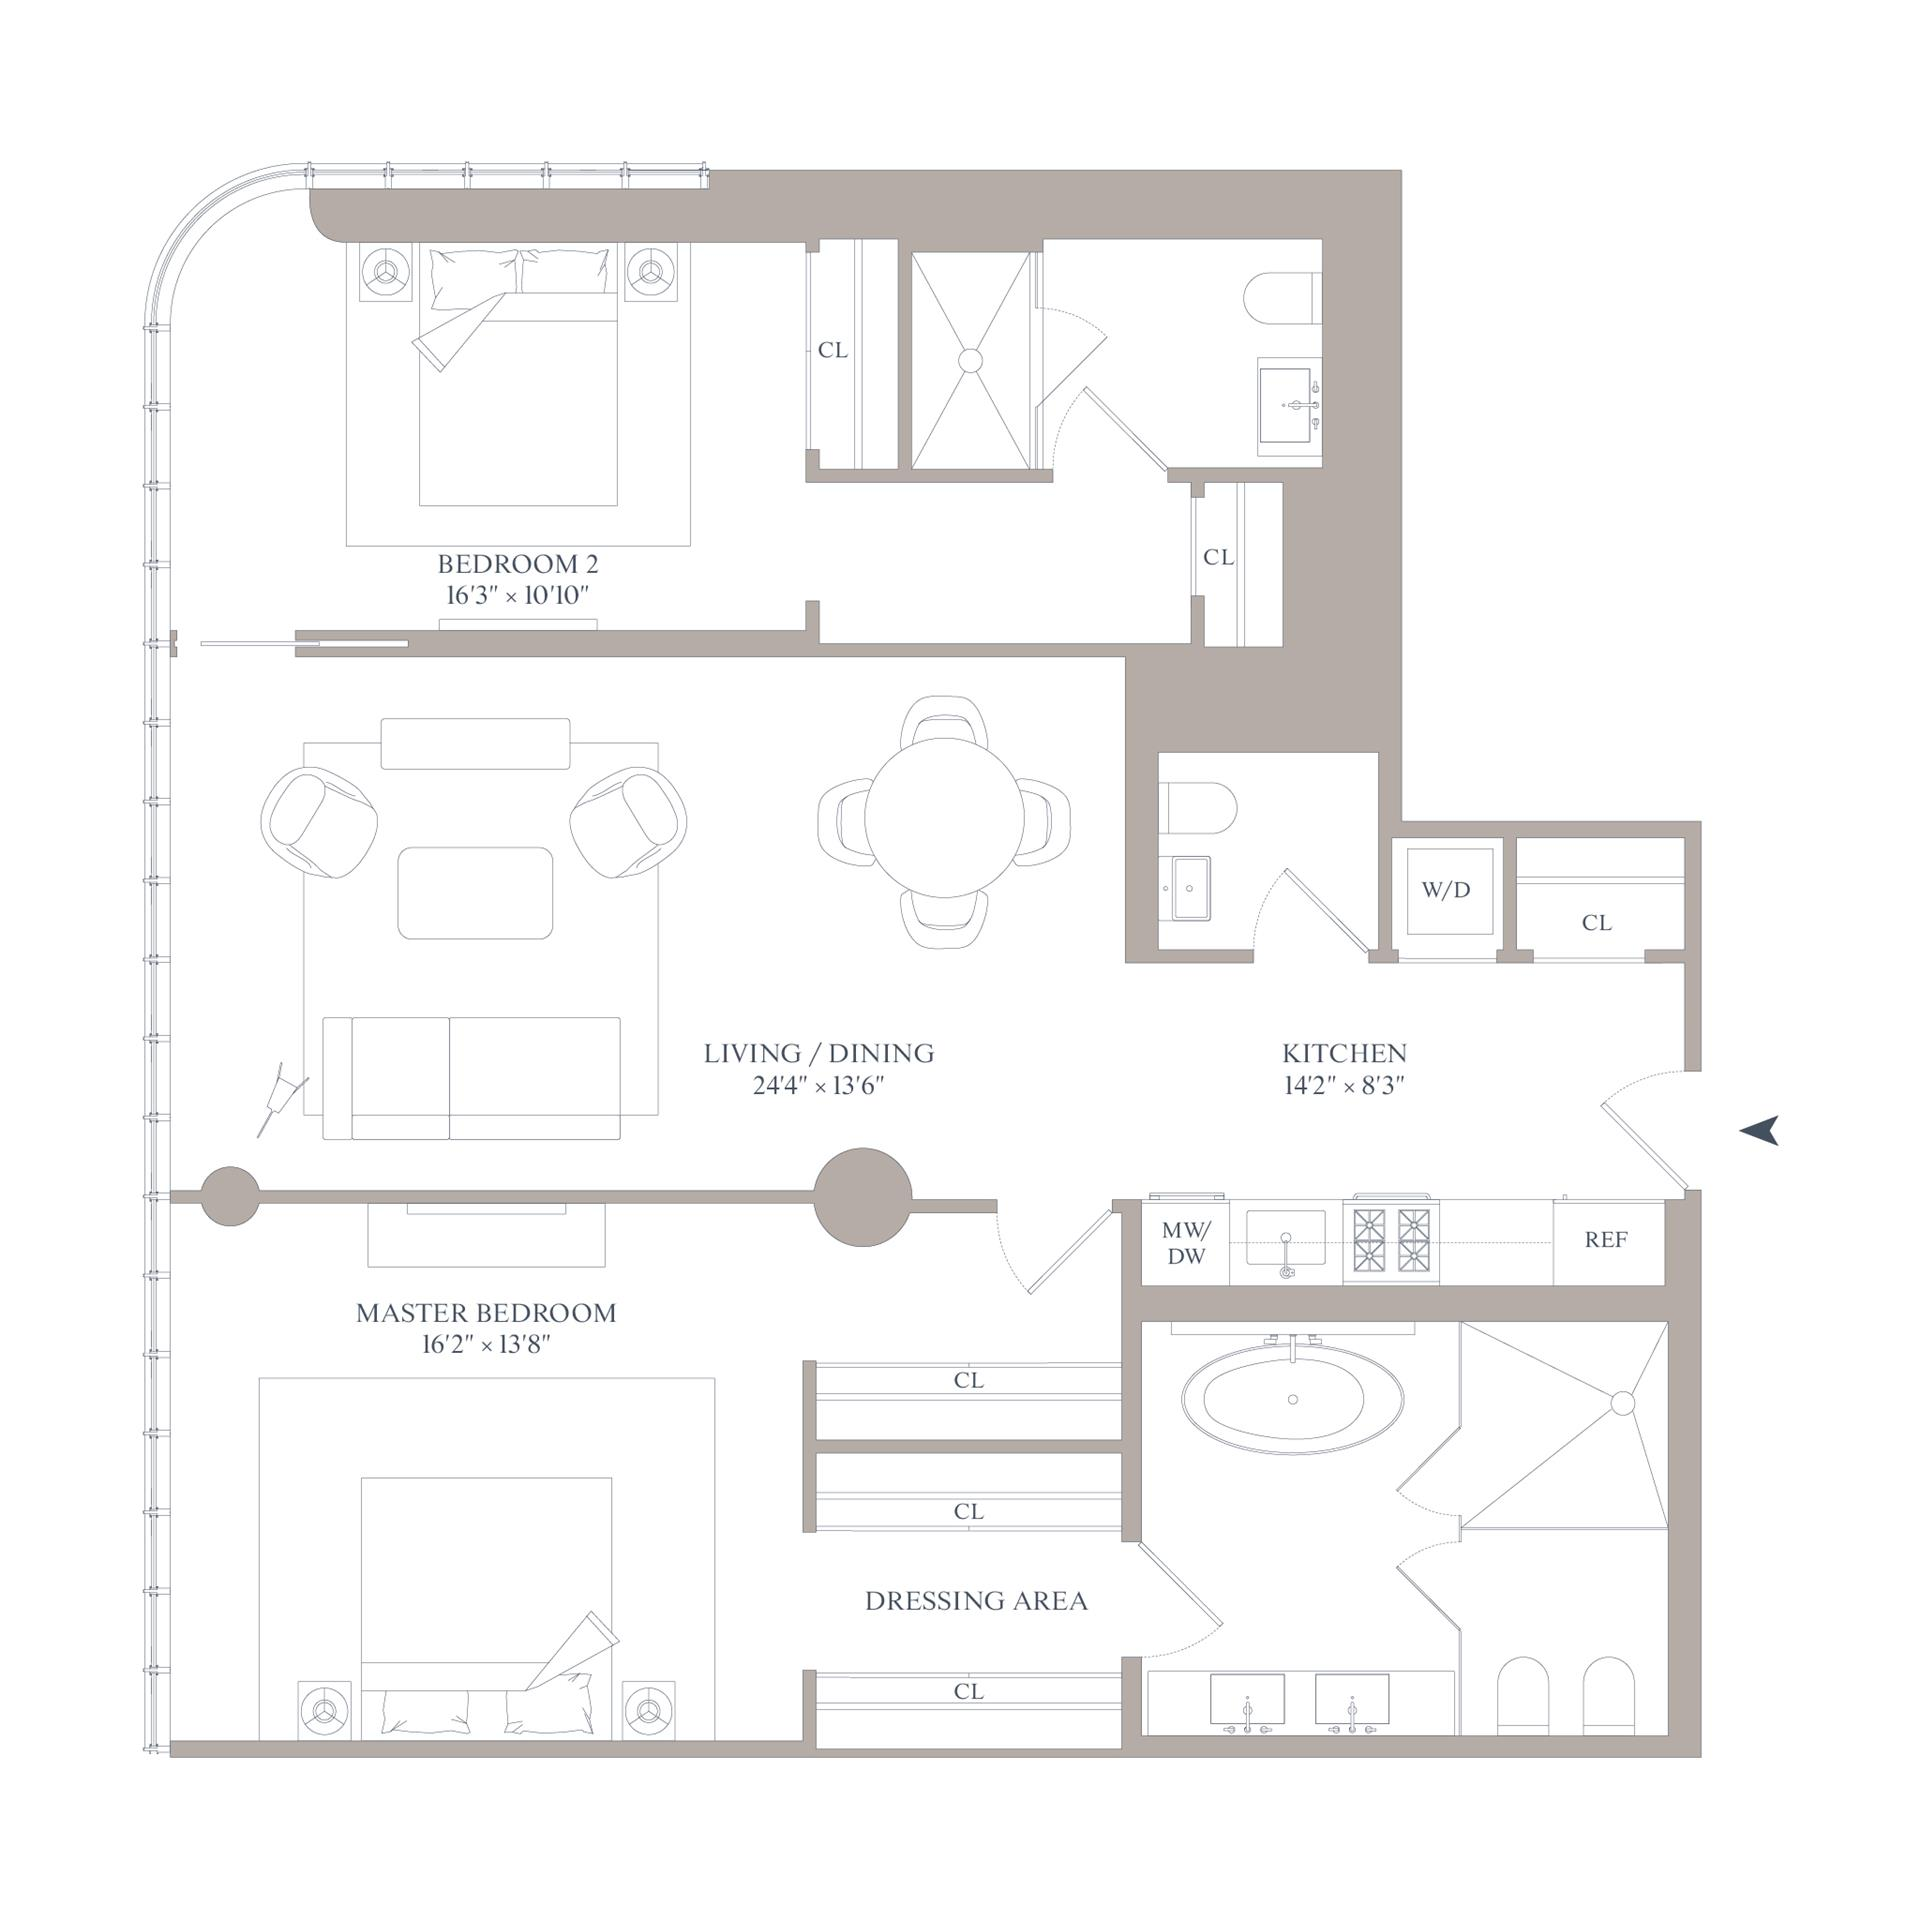 Floor plan of 565 Broome St, S11A - SoHo - Nolita, New York